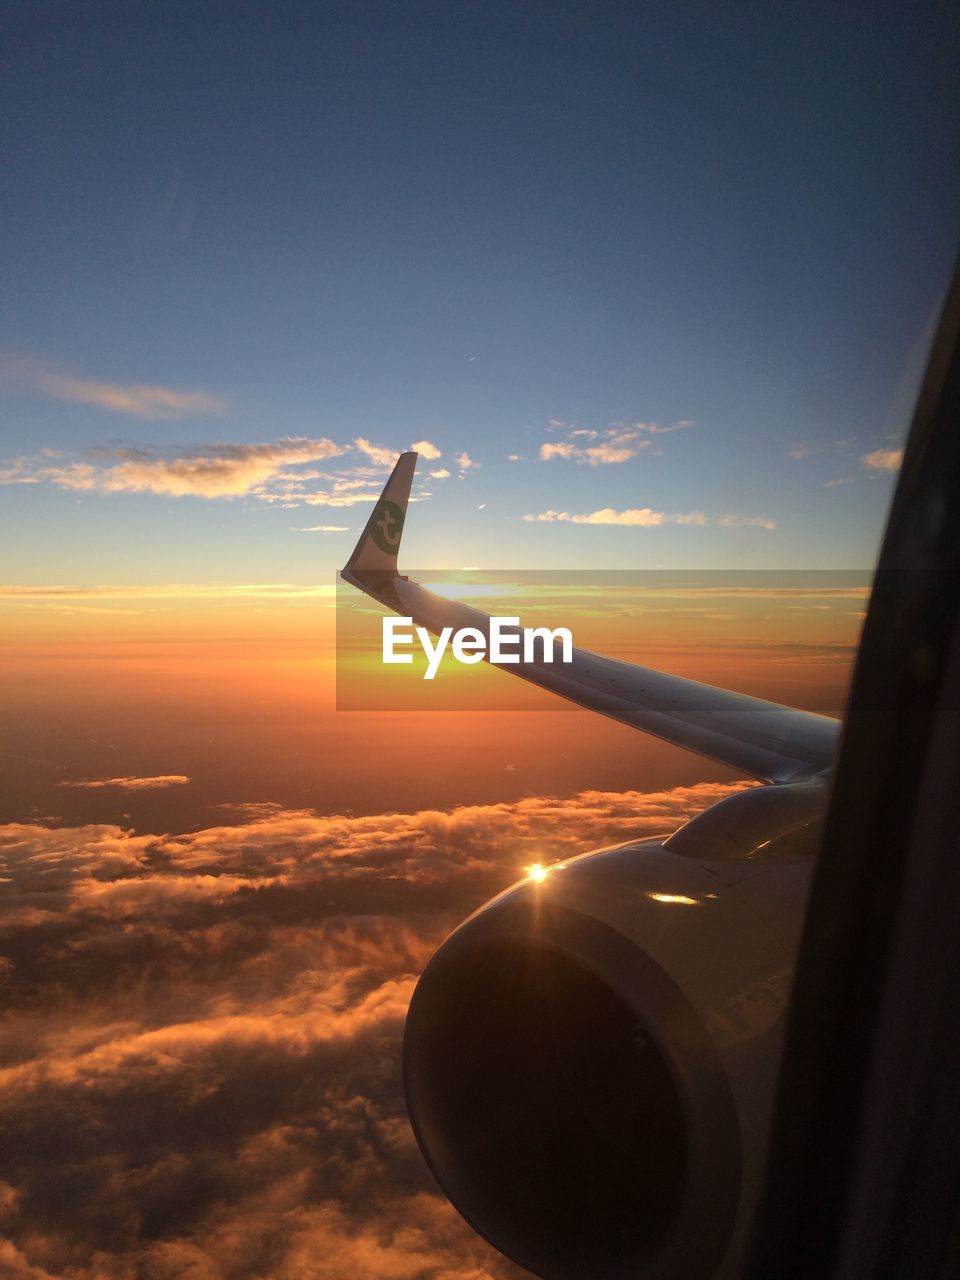 sunset, airplane, sky, orange color, transportation, cloud - sky, air vehicle, mode of transport, nature, scenics, beauty in nature, airplane wing, aircraft wing, flying, mid-air, no people, aerial view, outdoors, day